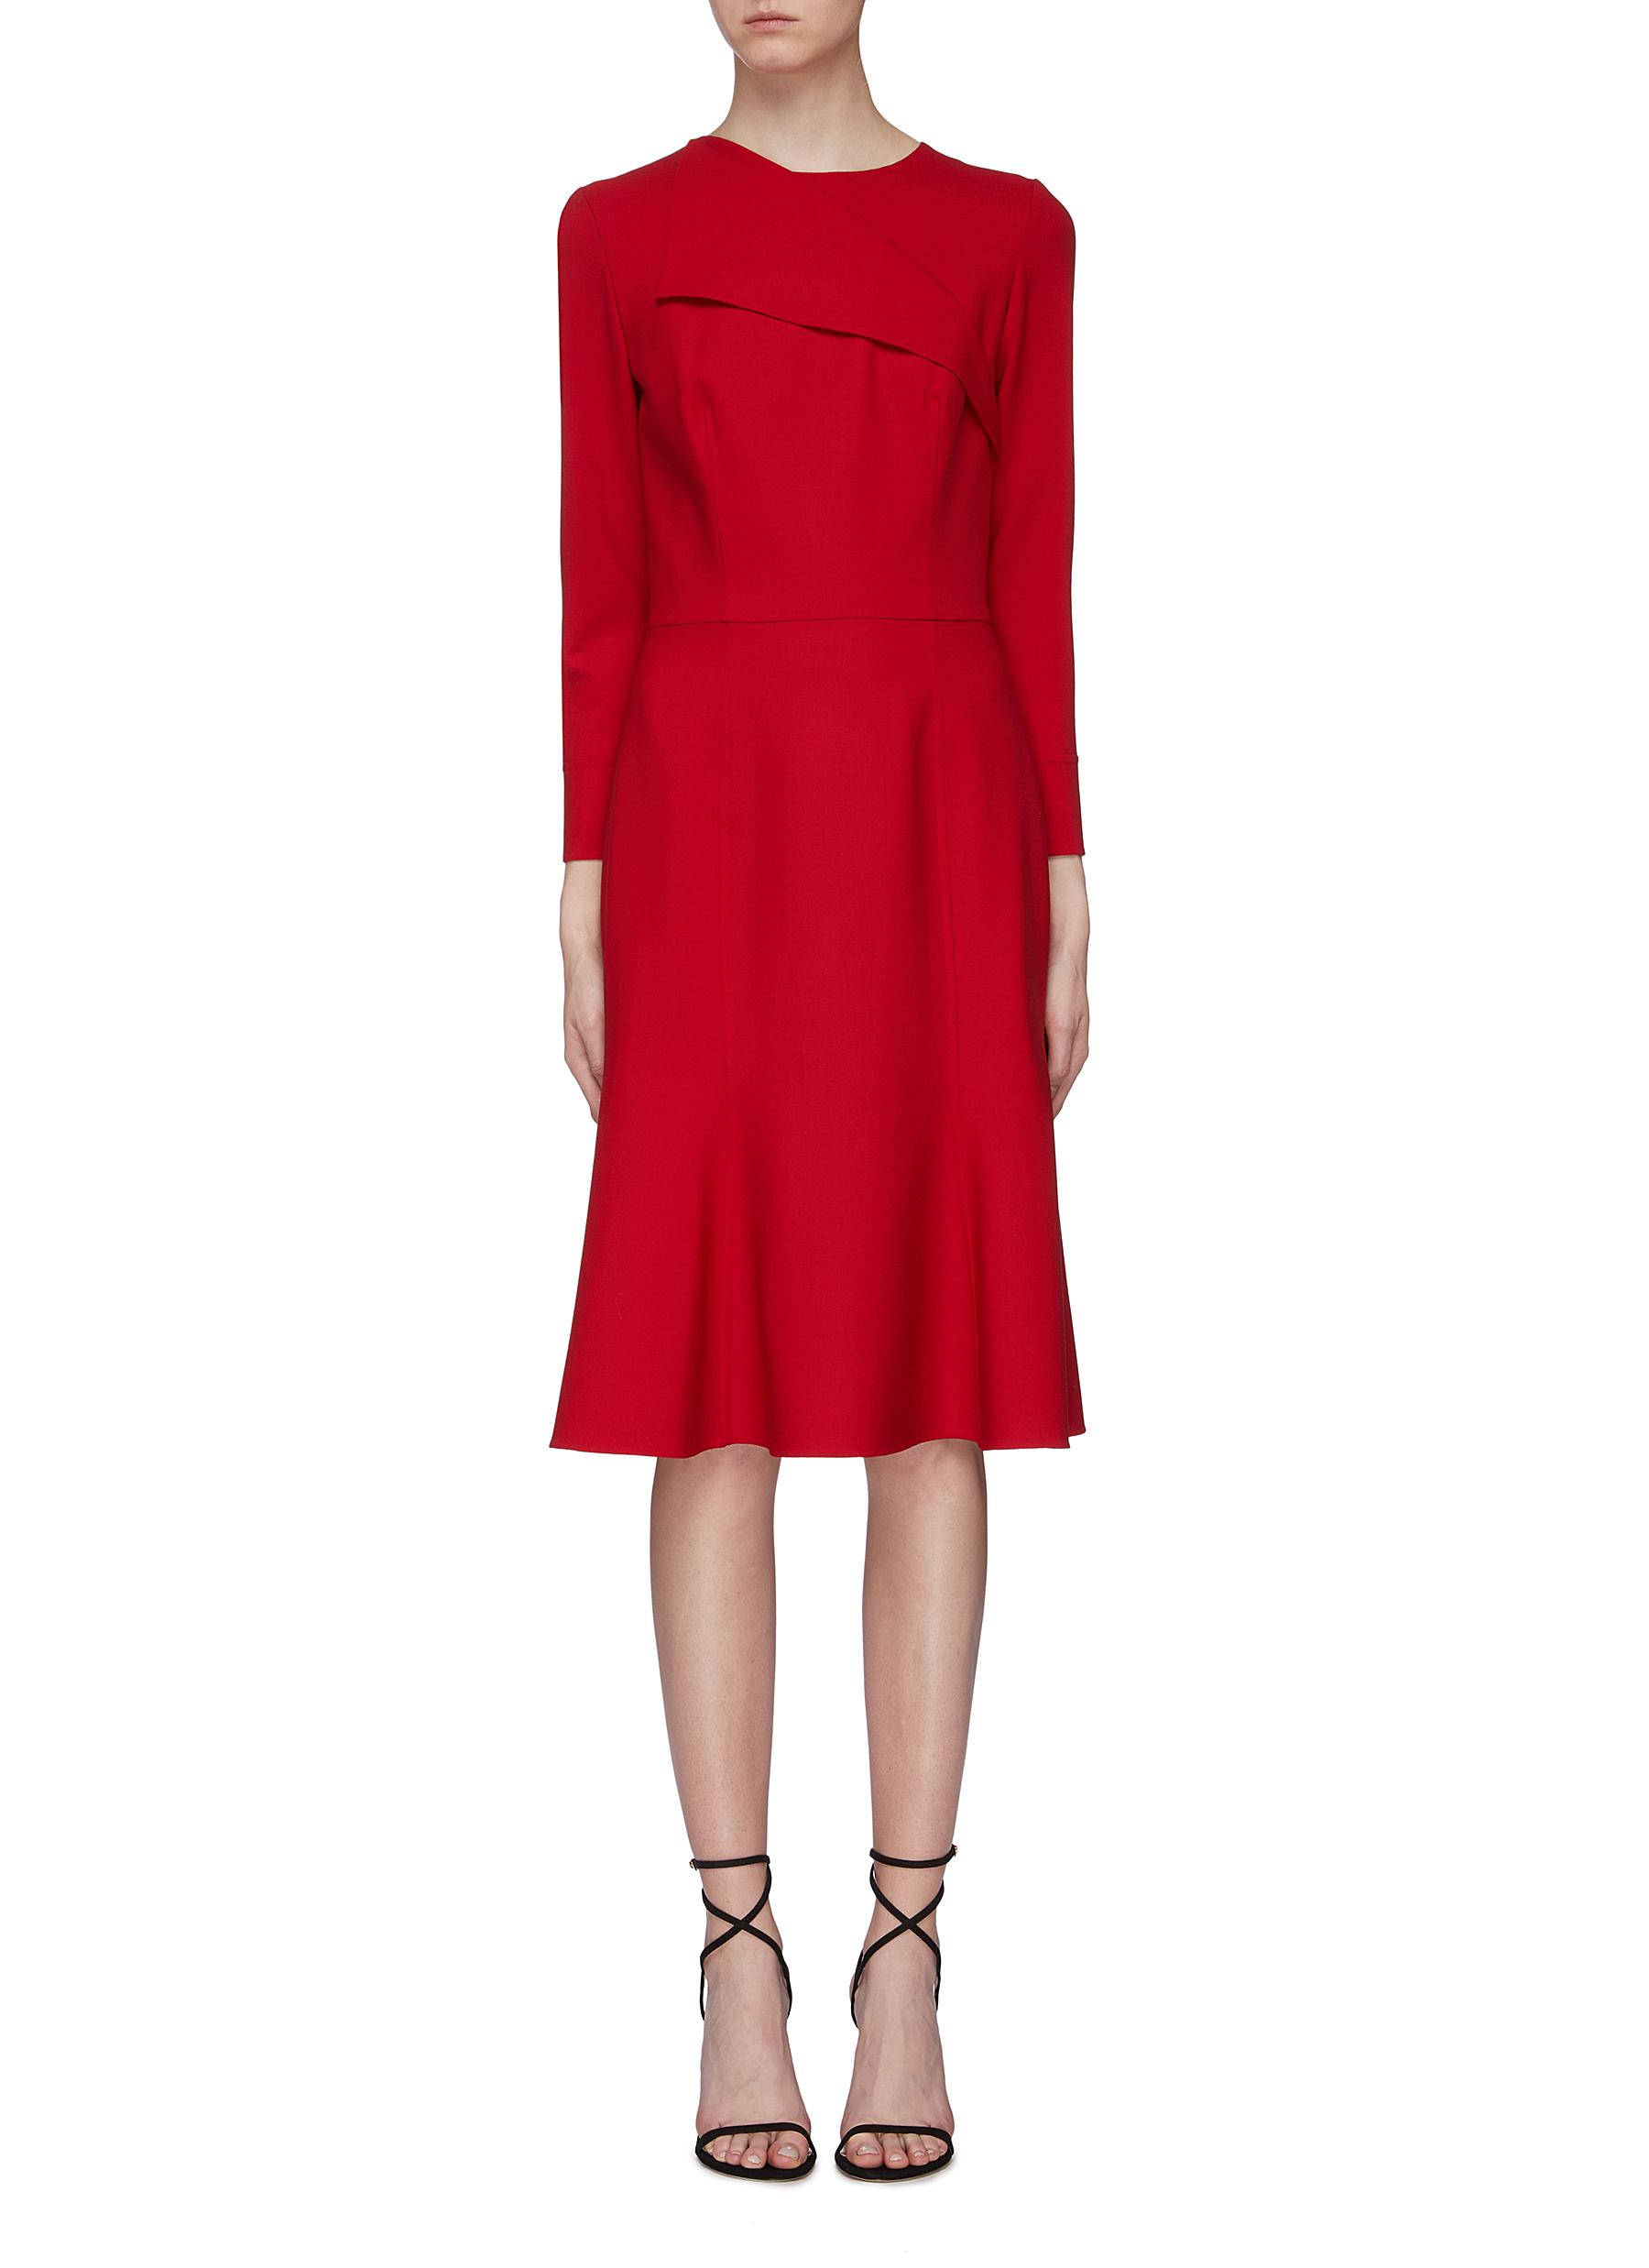 Foldover collar virgin wool blend dress by Oscar De La Renta